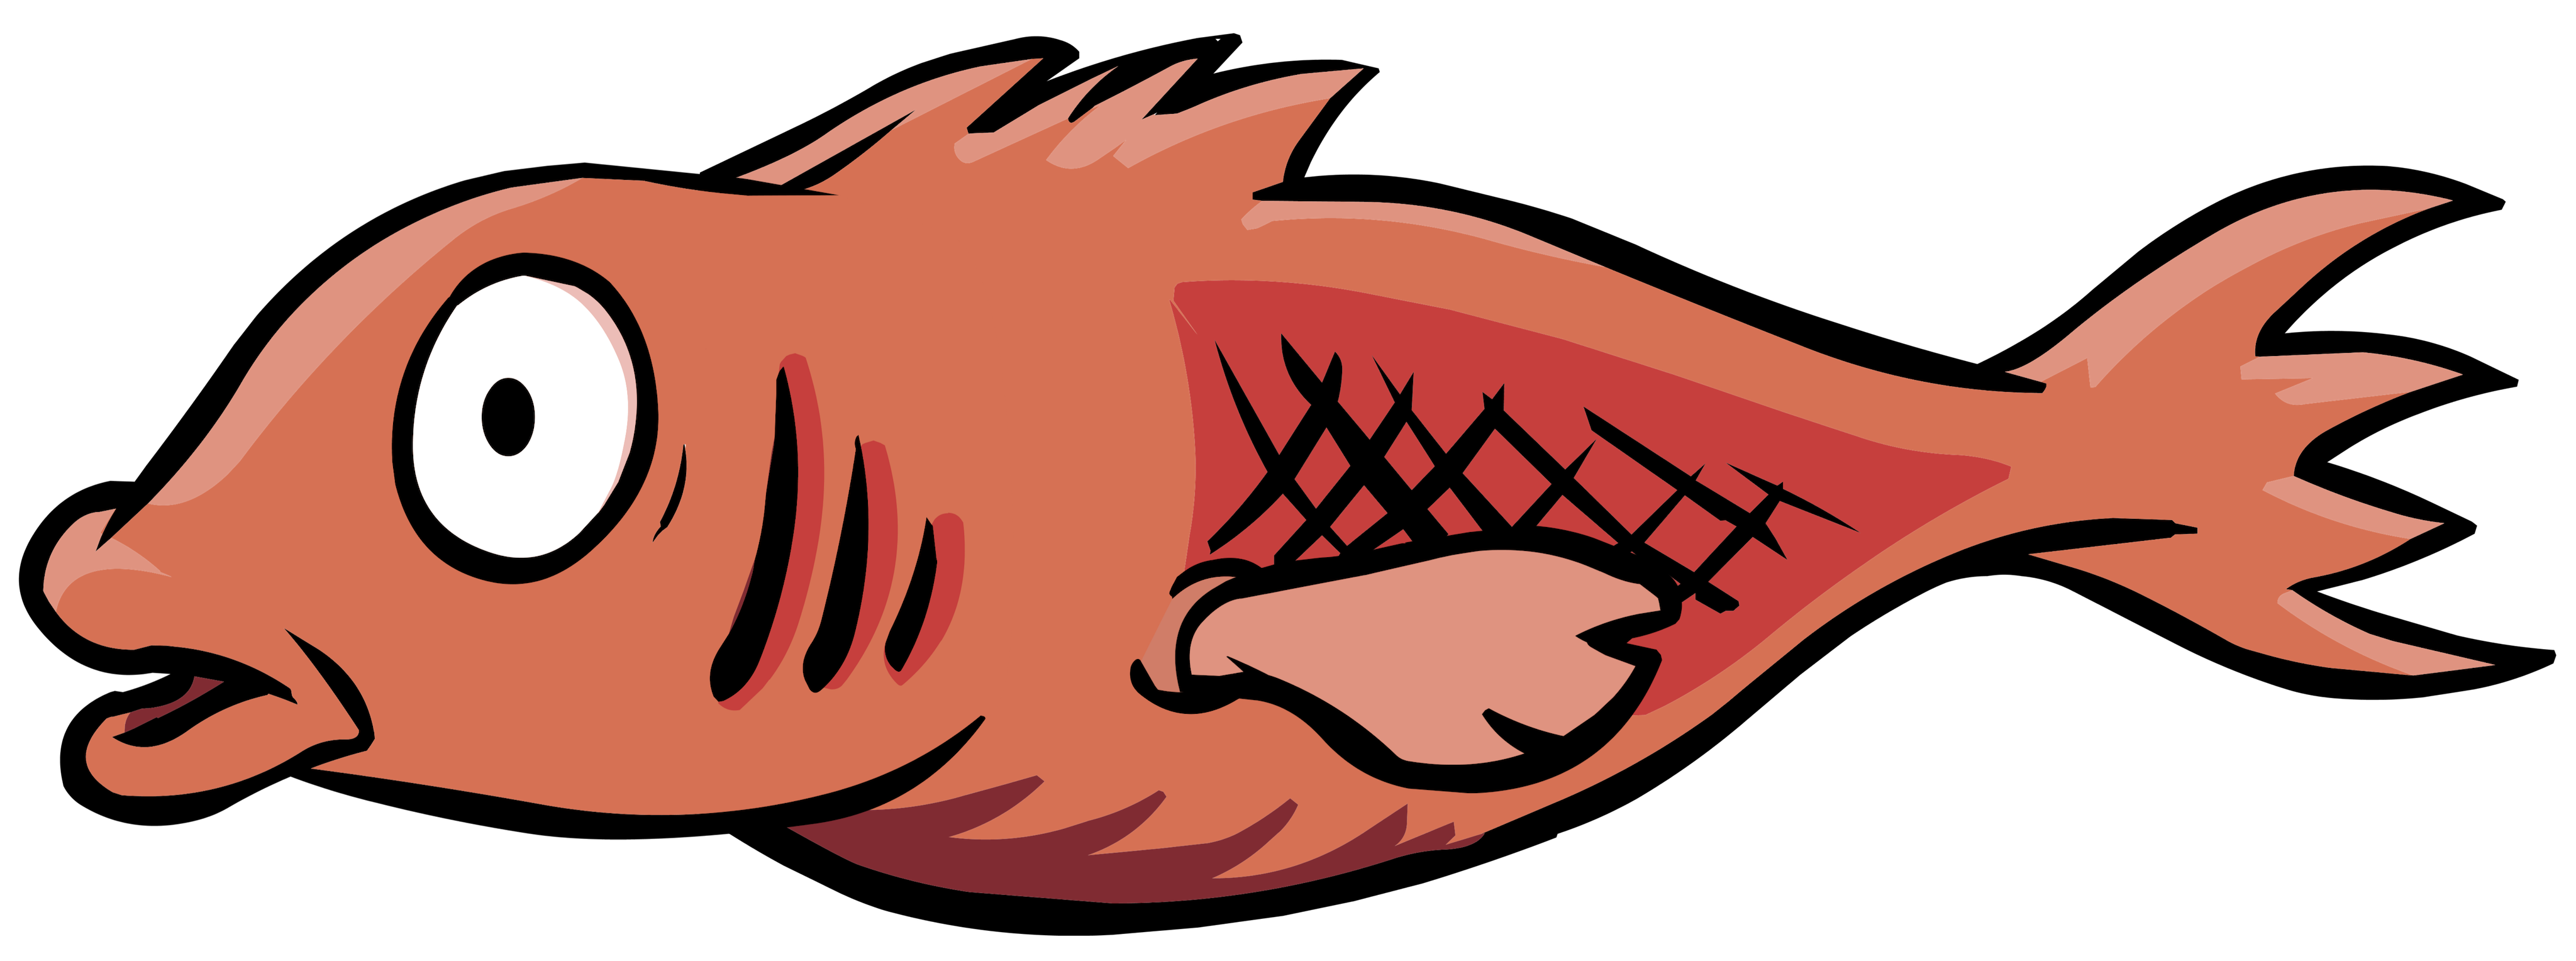 Fish being caught clipart clipart royalty free download Mullet | Club Penguin Rewritten Wiki | FANDOM powered by Wikia clipart royalty free download